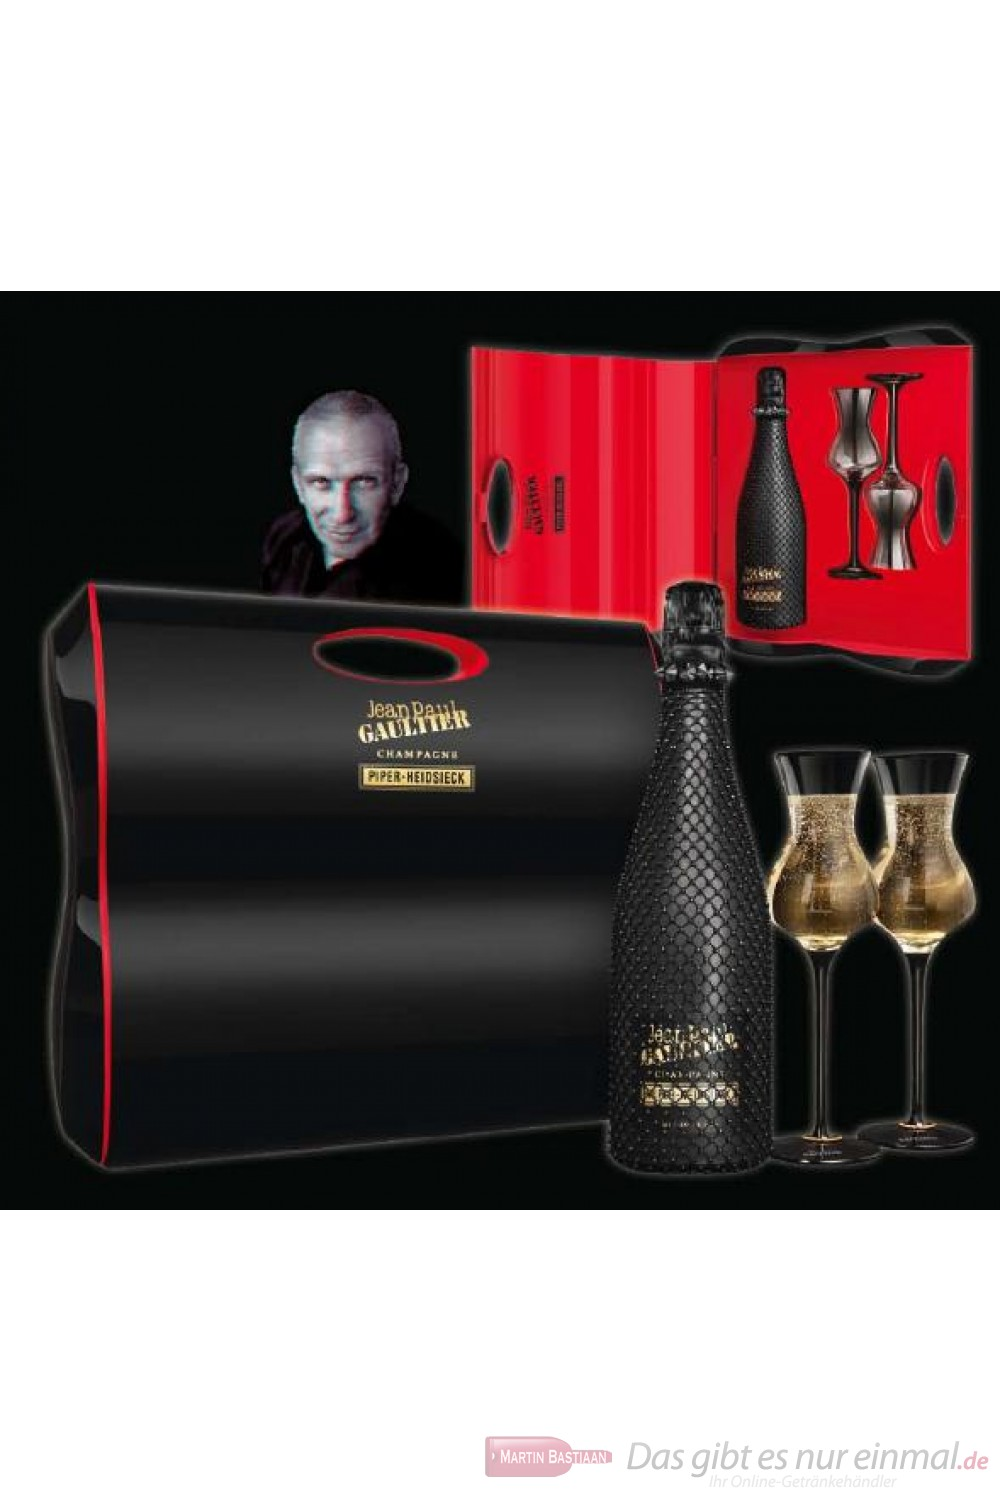 Piper Heidsieck Brut Skin Edition Privée Limited Edition Jean Paul Gaultier 12% 0,75l Flasche